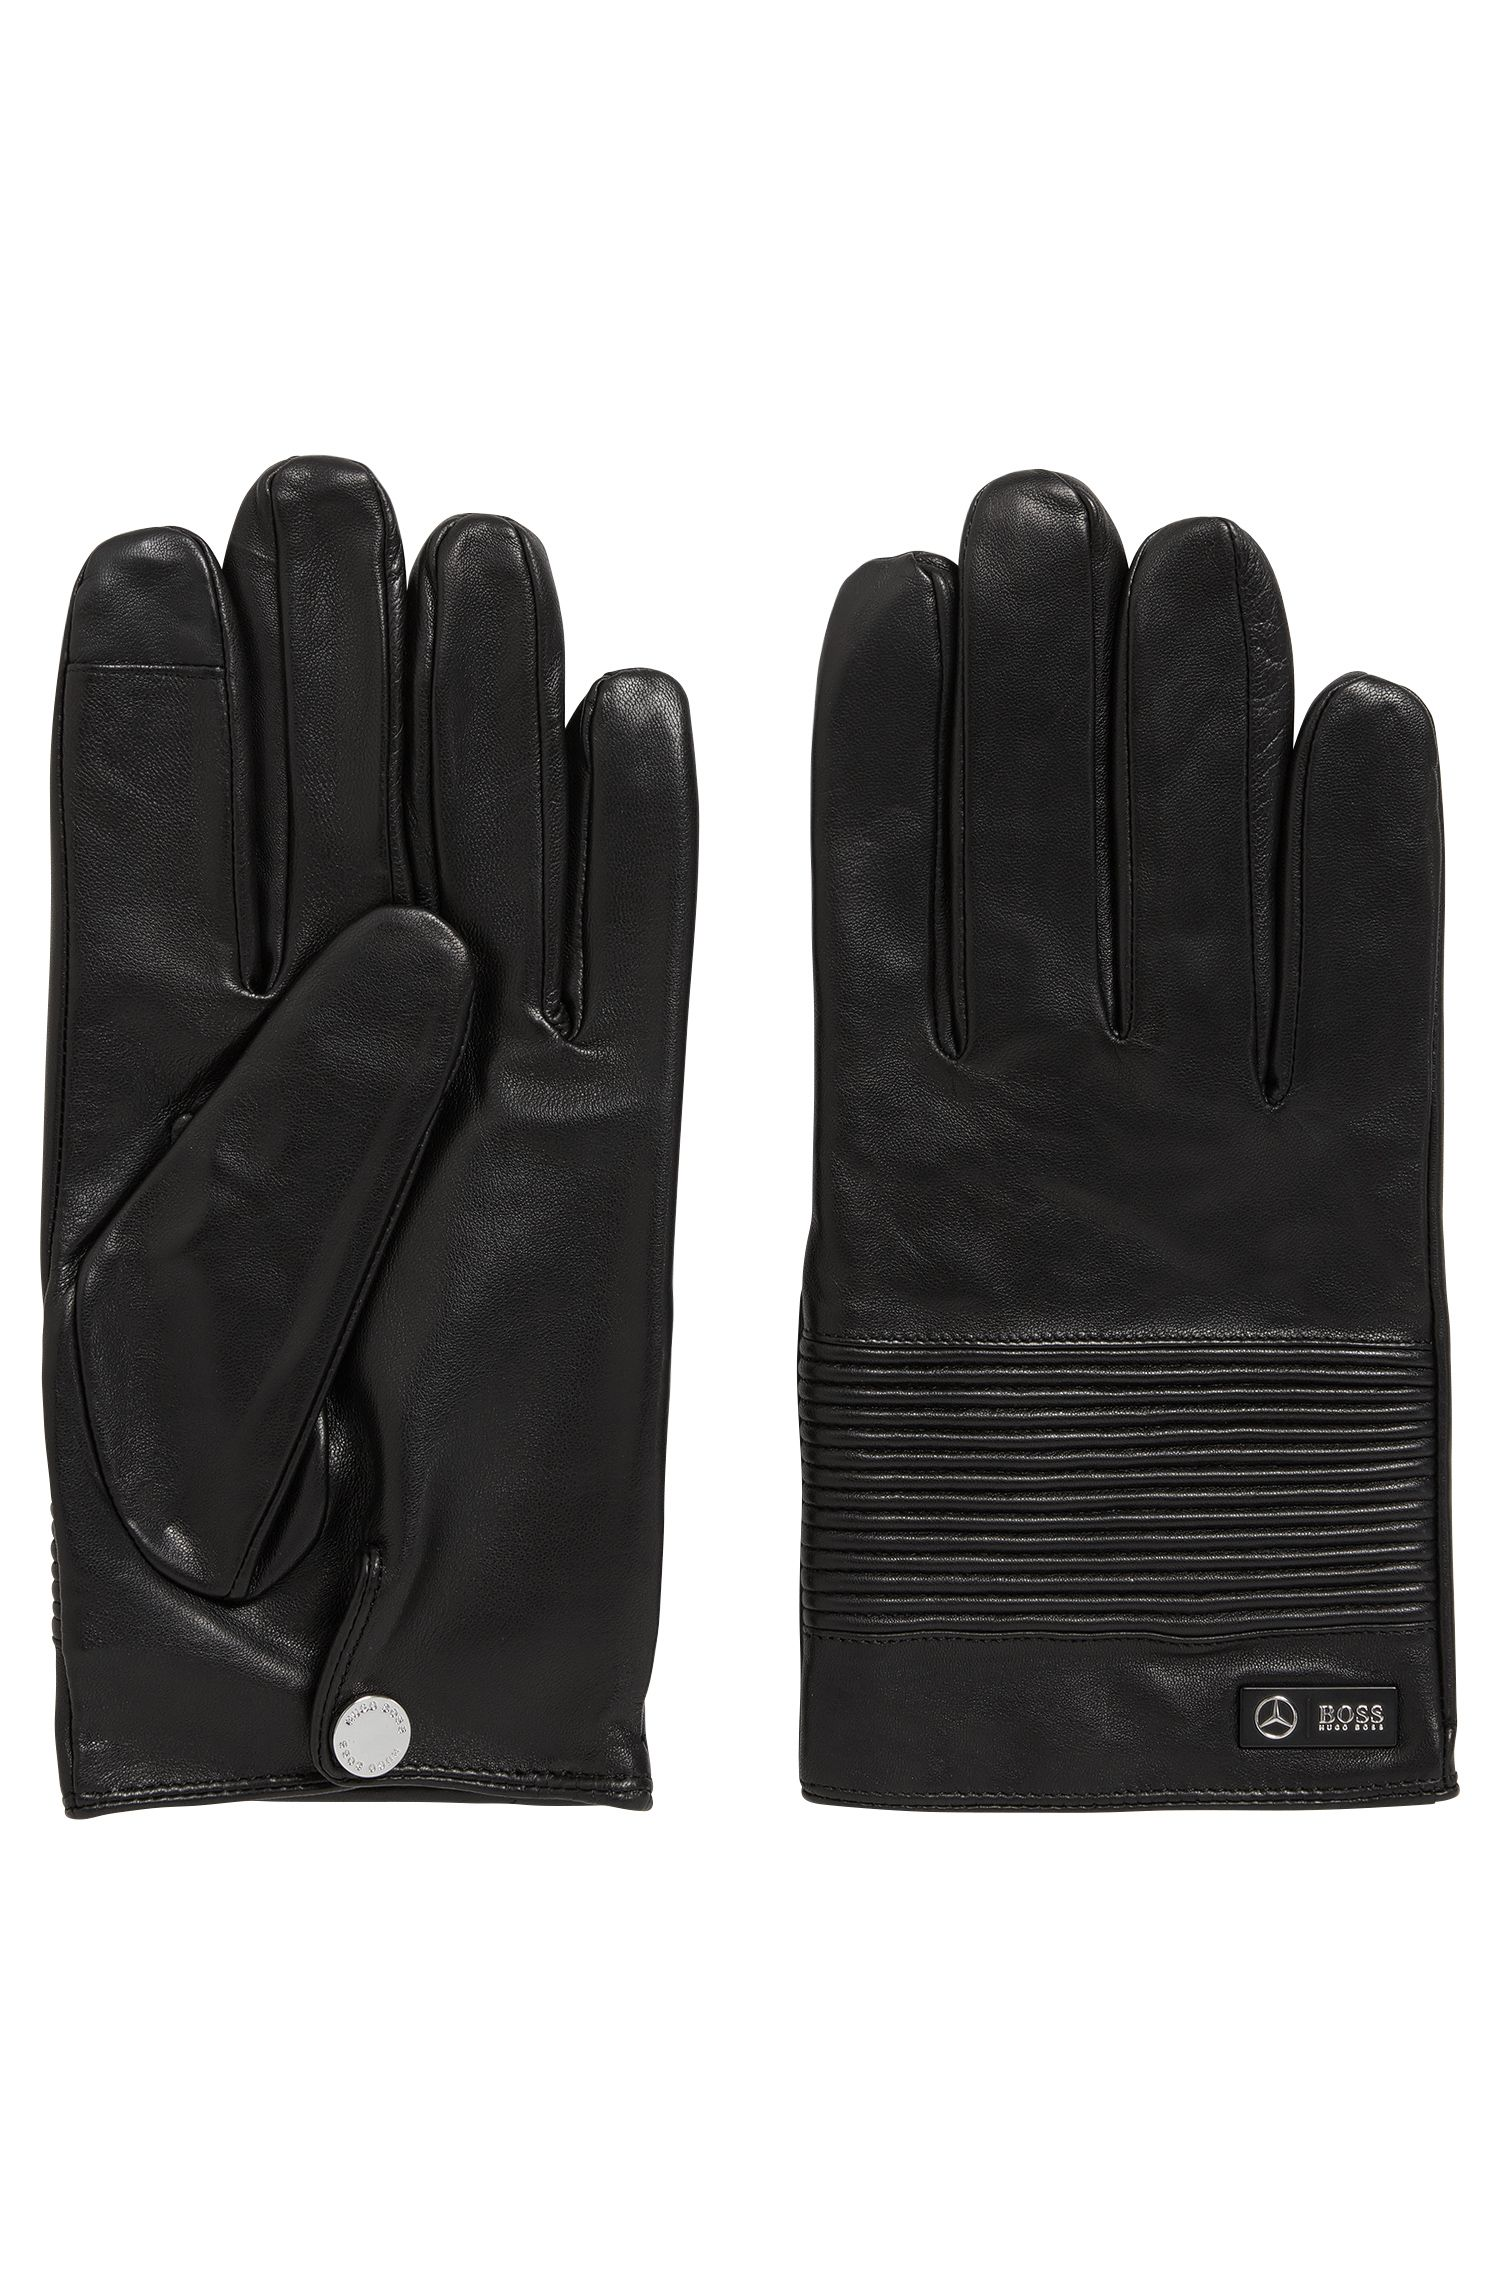 Mercedes-Benz Nappa Leather Tech Touch Glove | Kilo TT